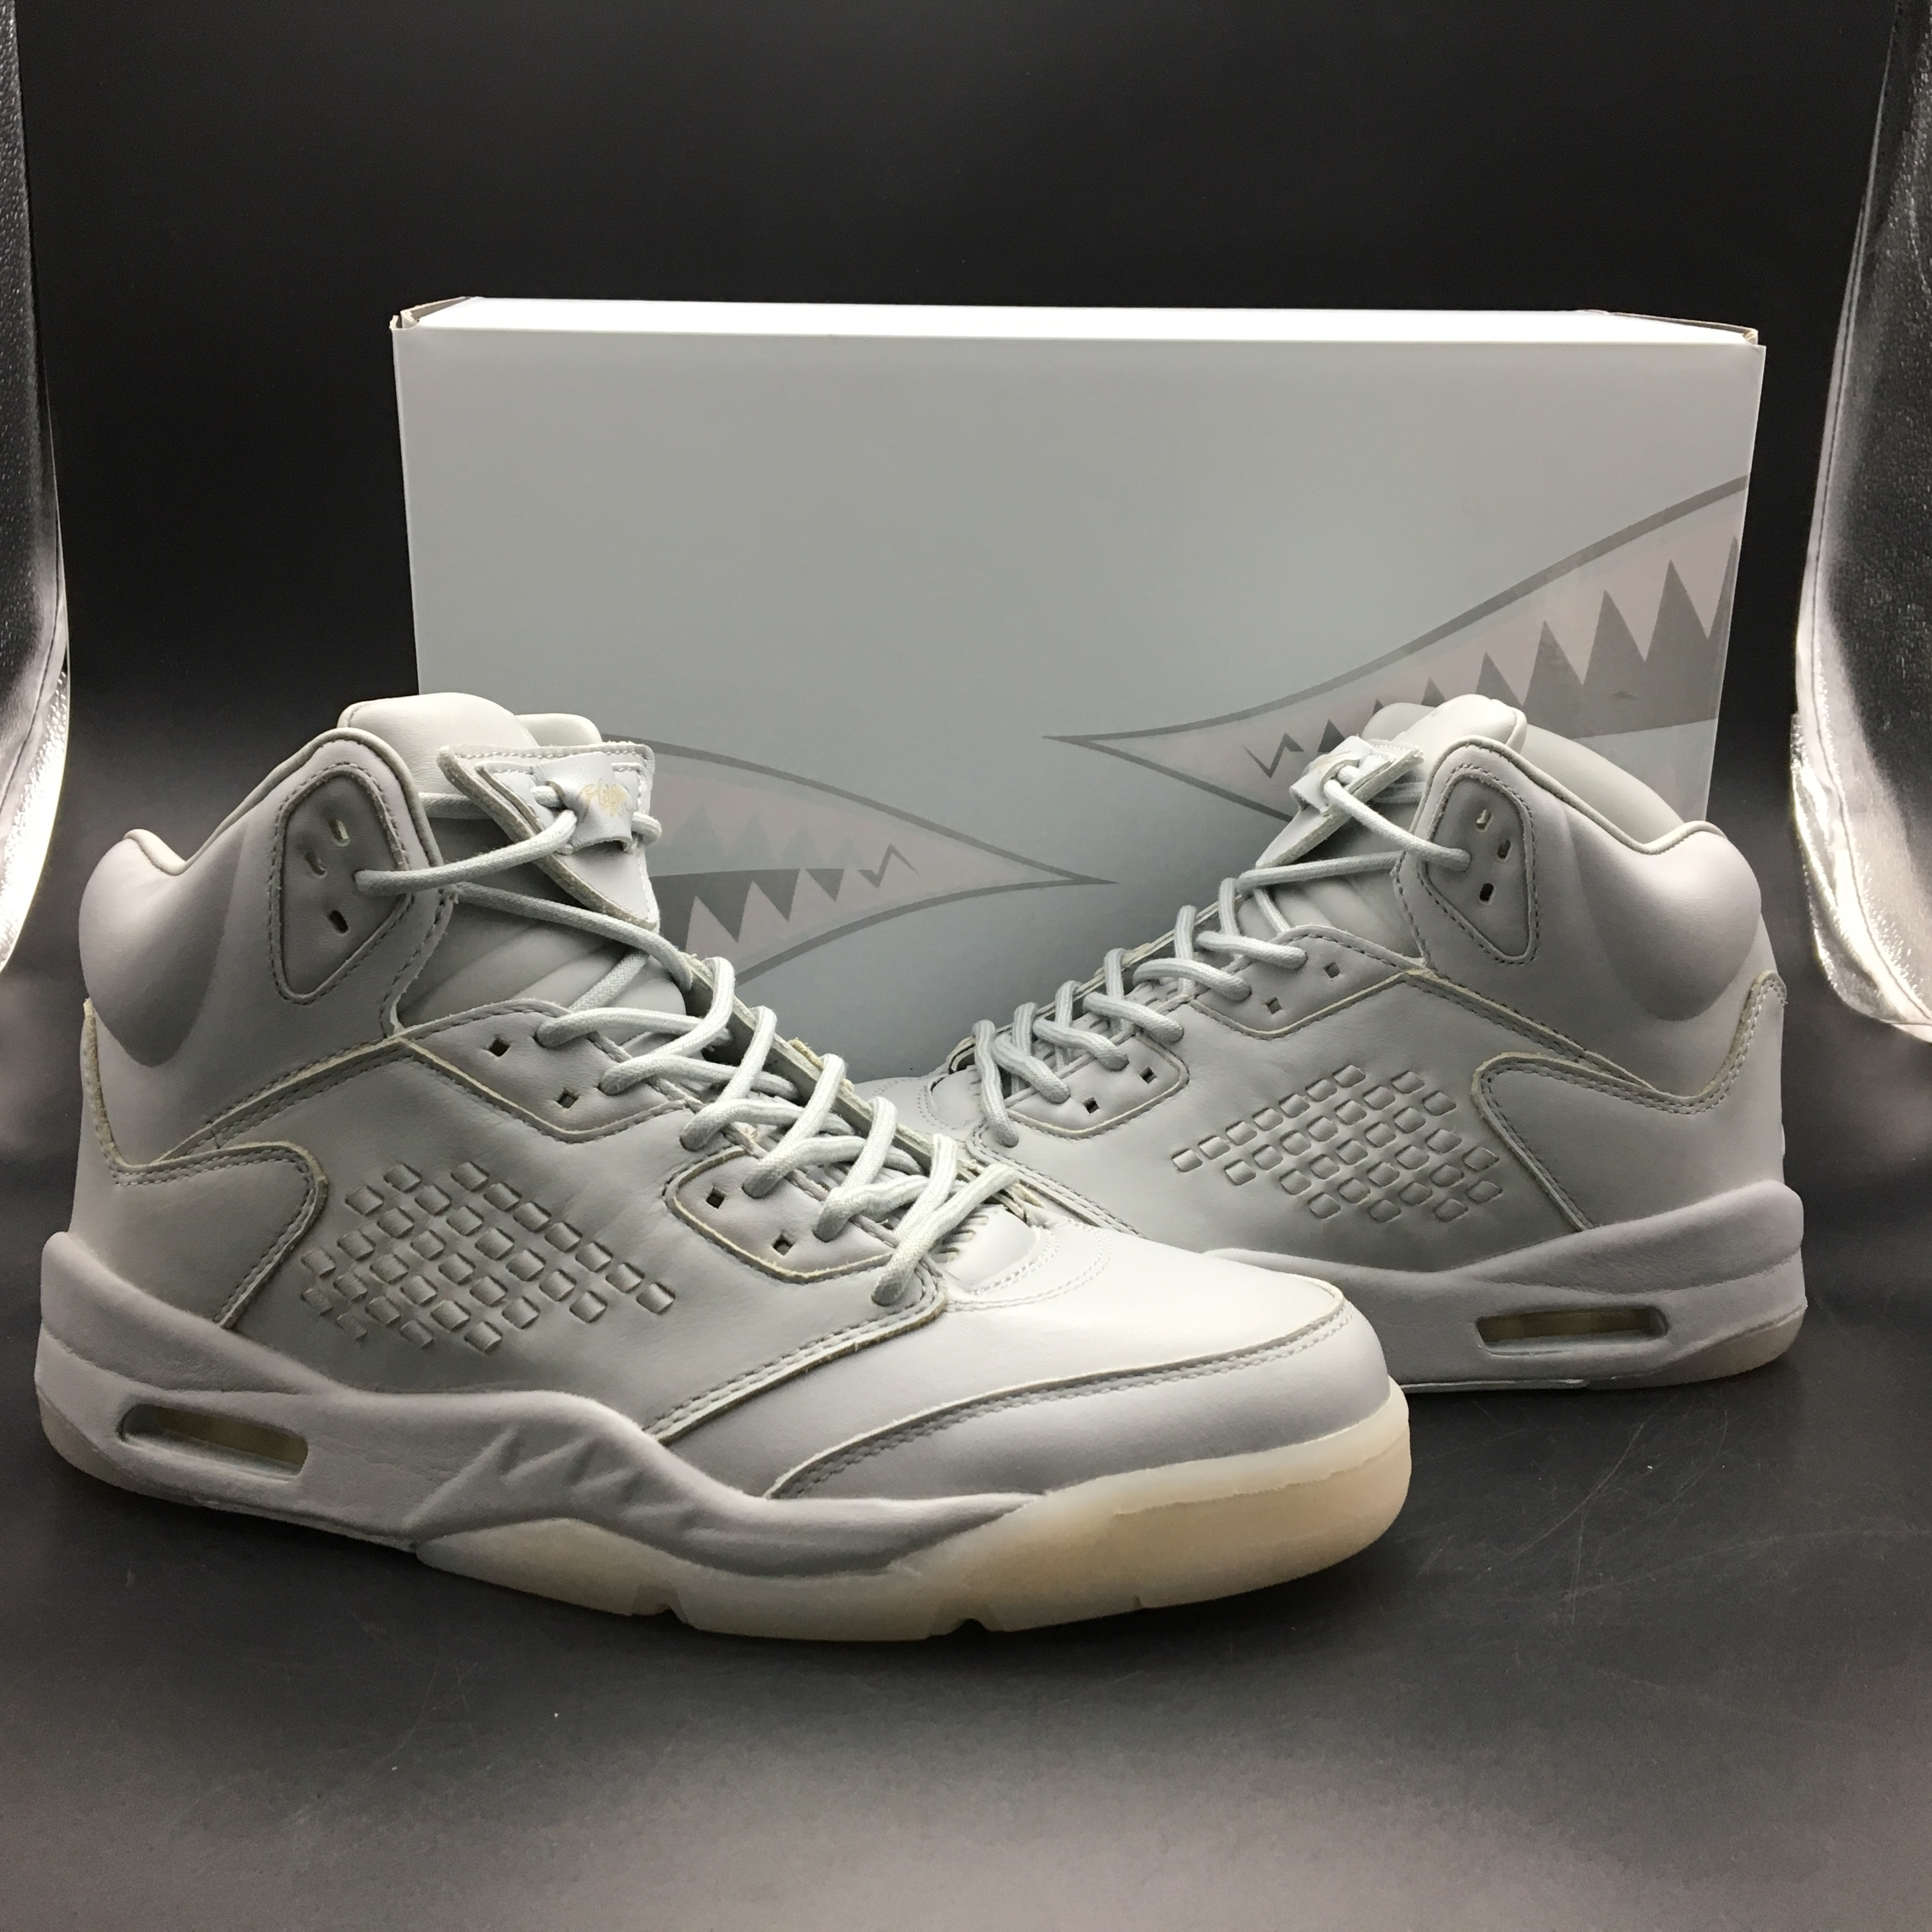 Air Jordan 5 Premium Pinnacle Grey Shoes